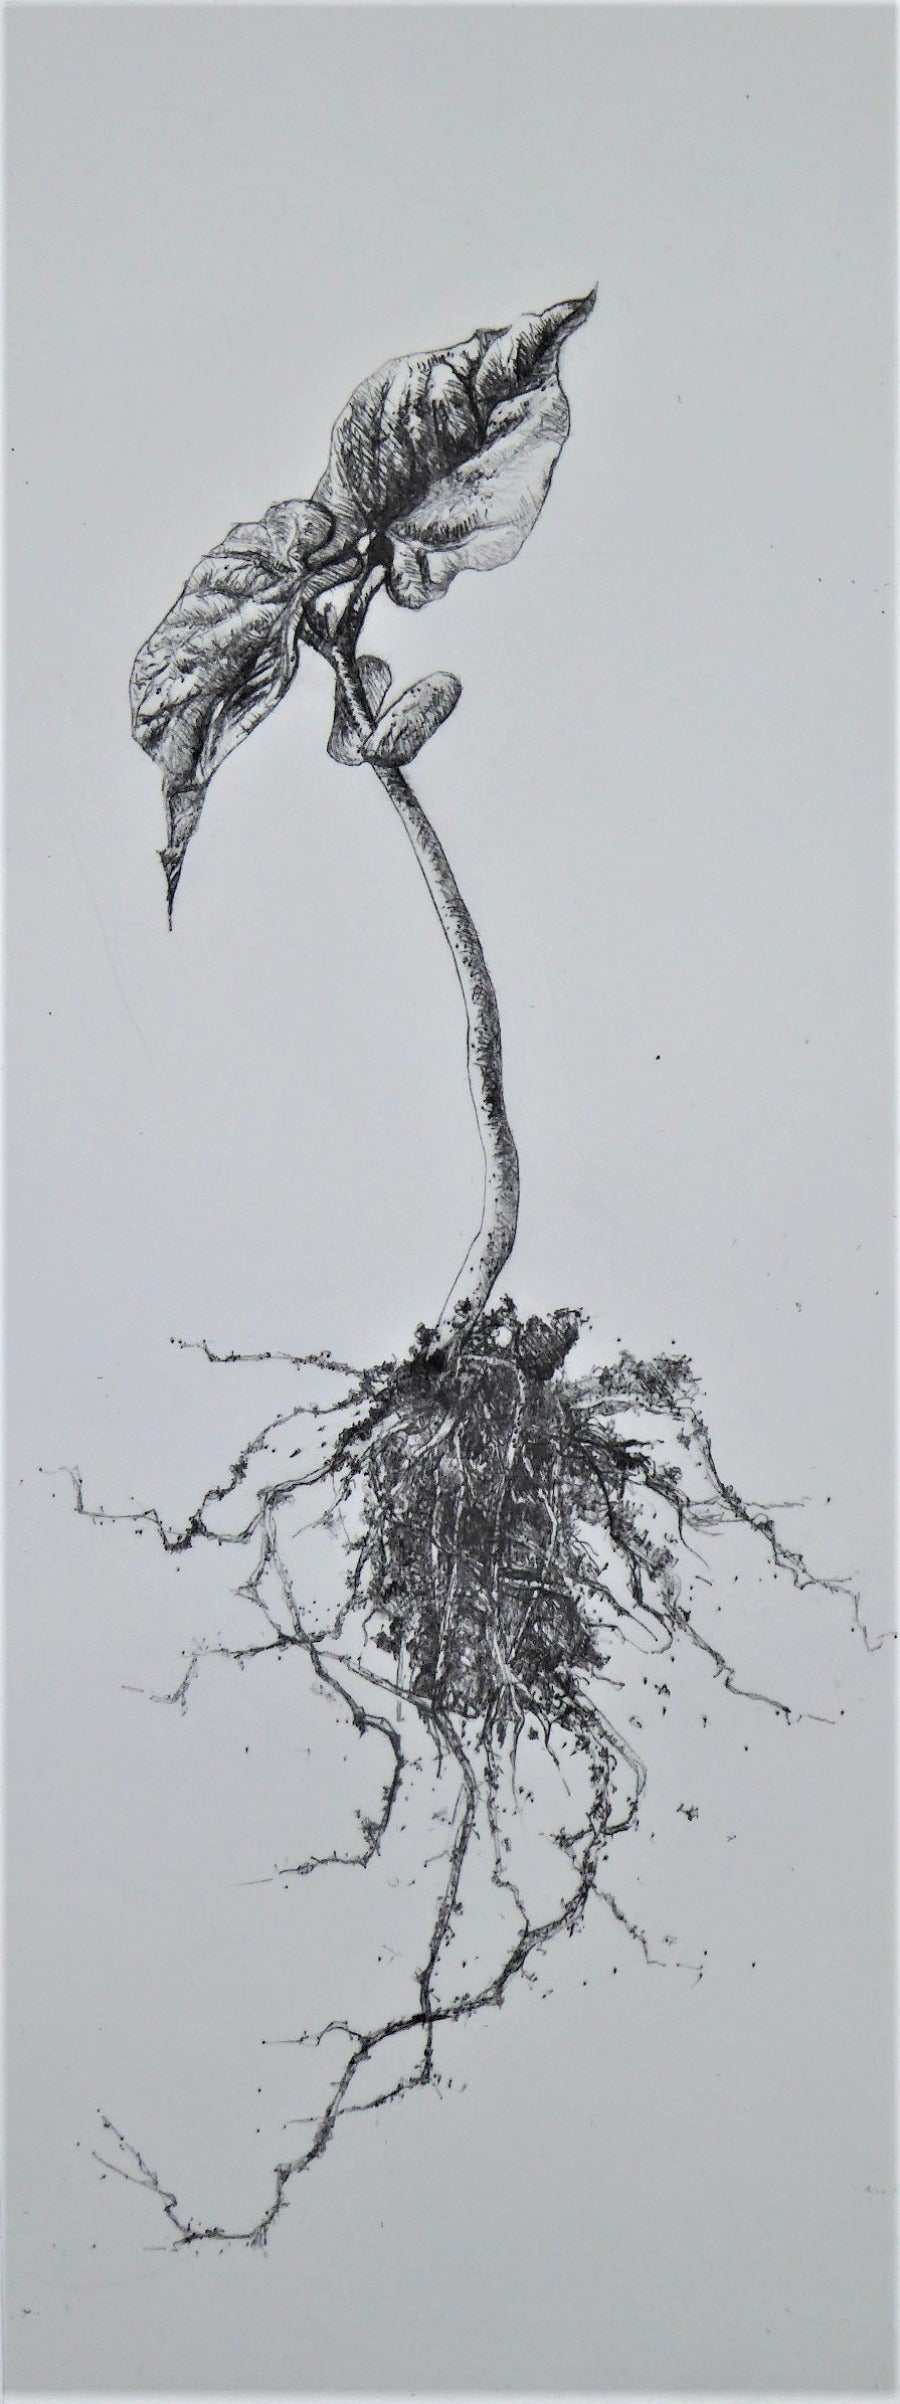 View and buy original paintings online at The Biscuit Factory. Part of the New Light Exhibition 2020: 'Shoot' a print of a growing plant by Richard Foster. Image shows a tall black and white print of a growing plant including roots.